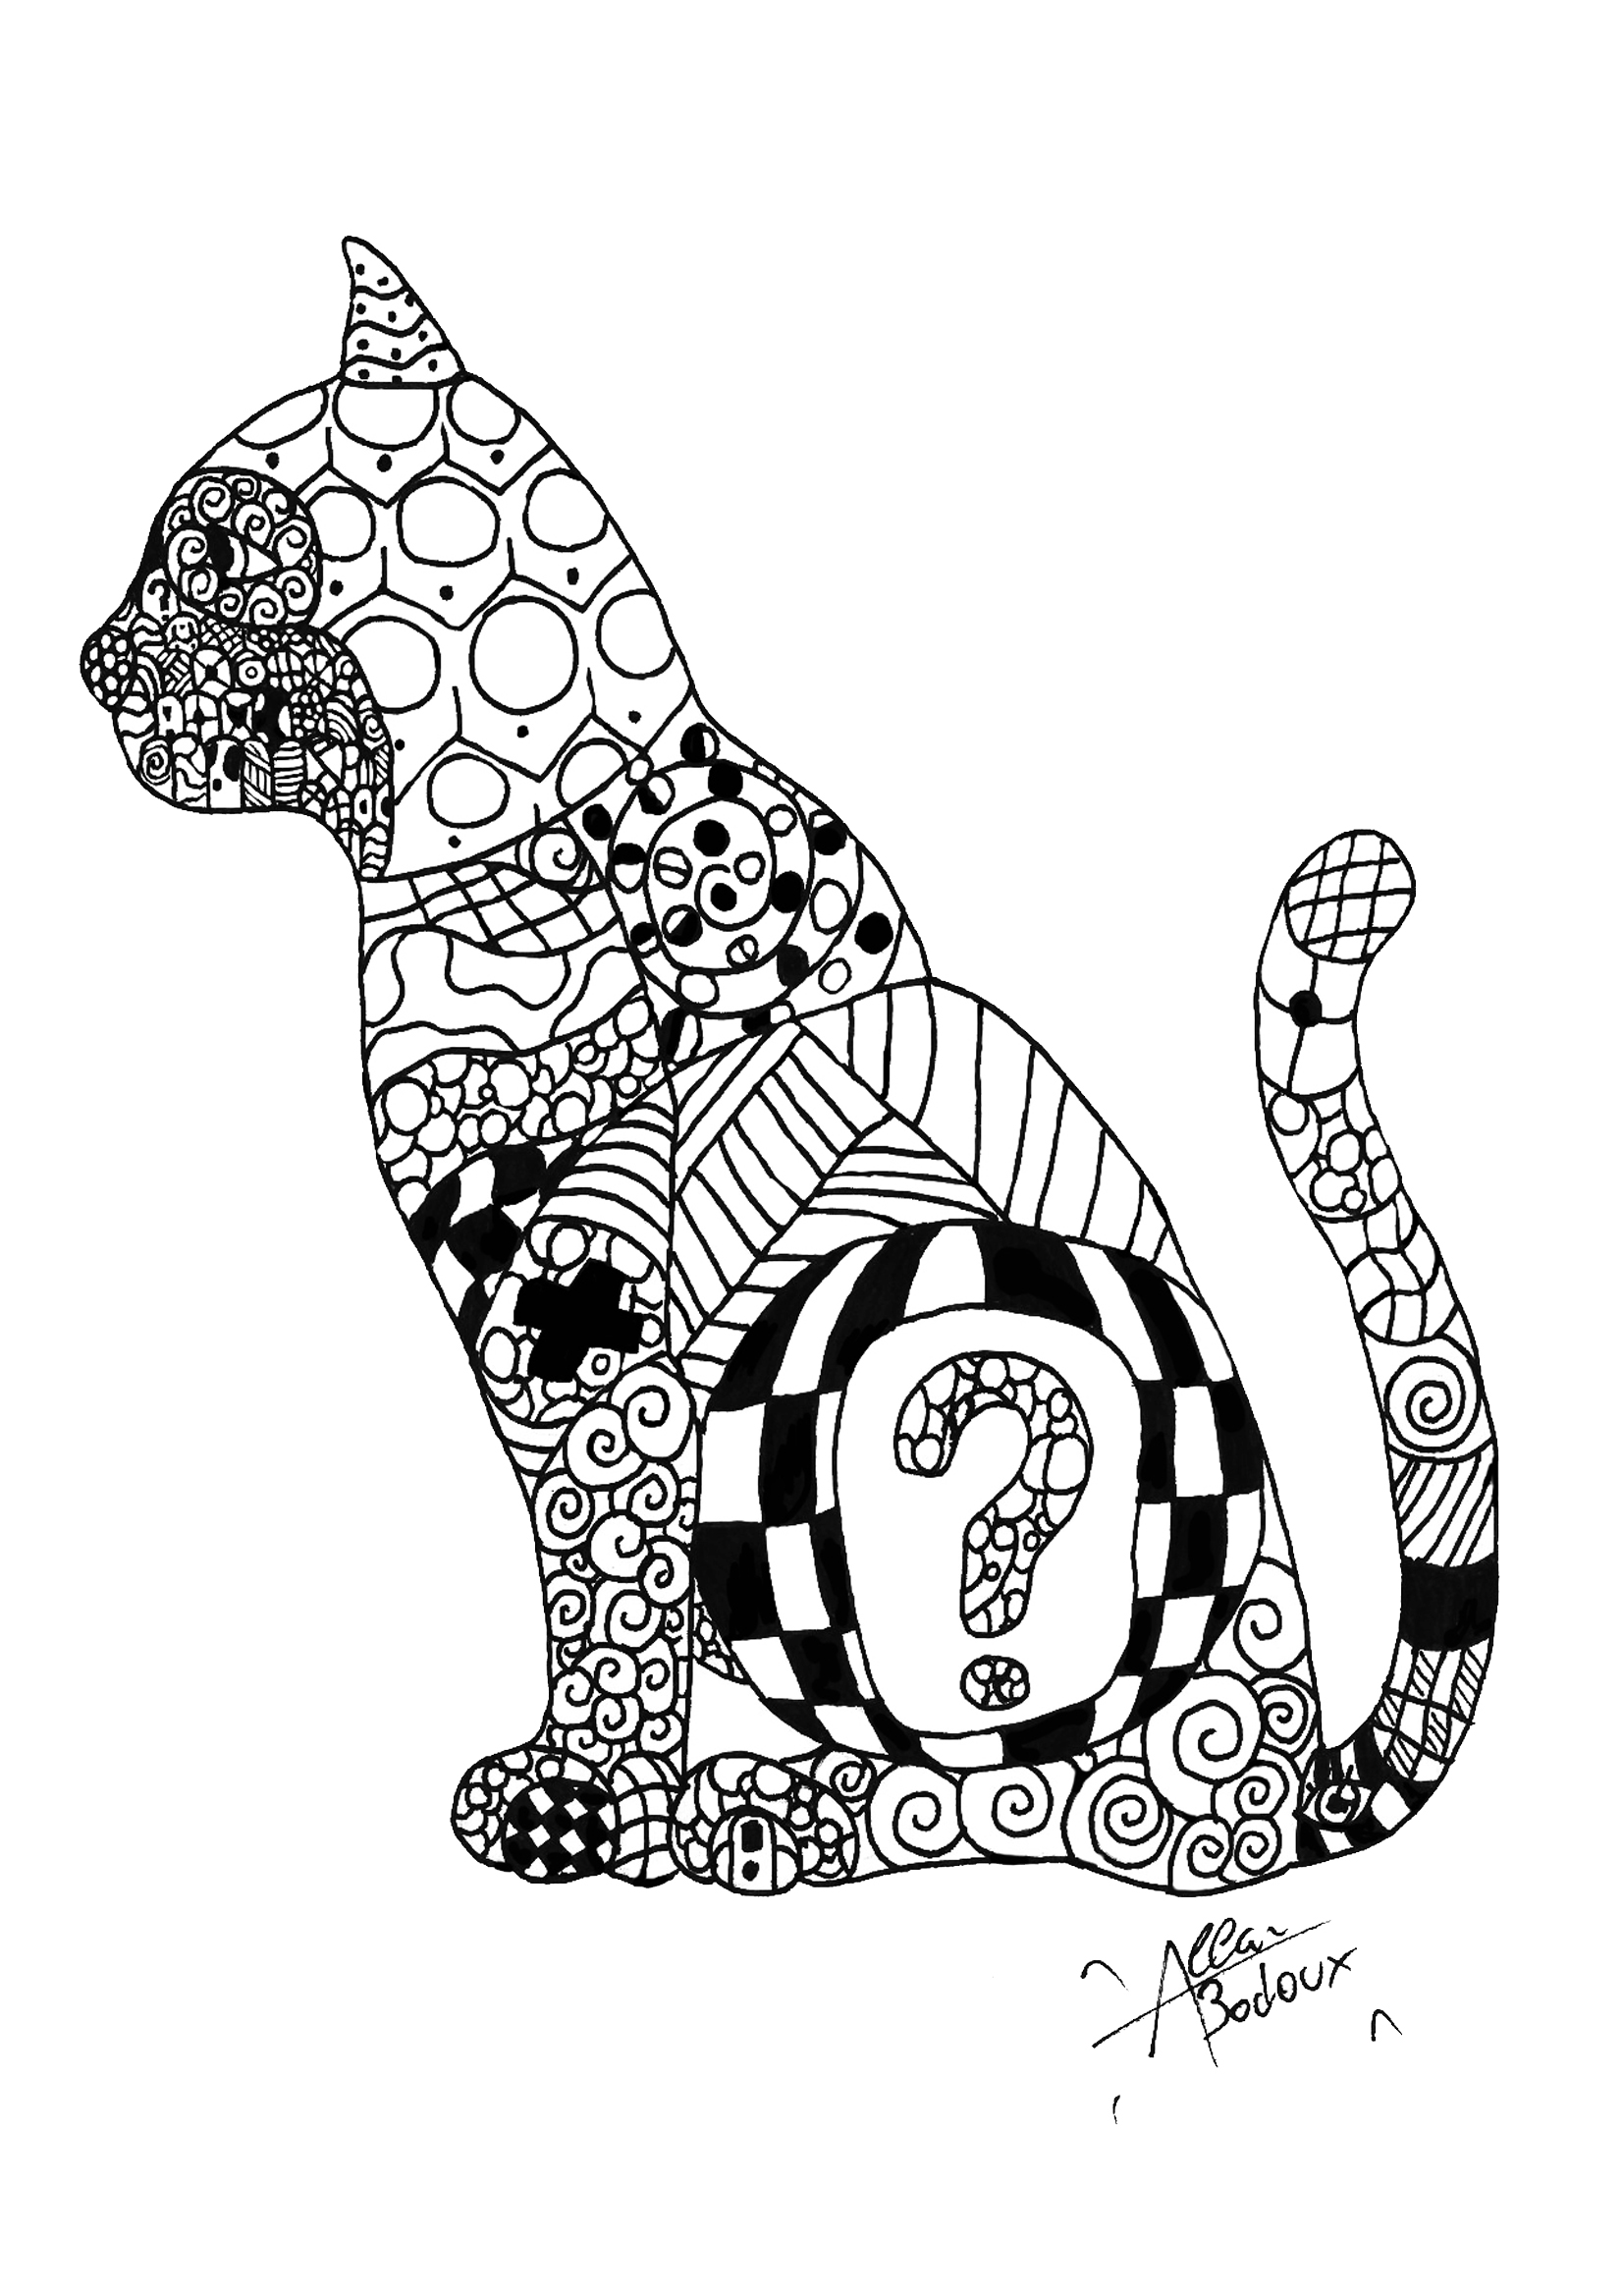 Zentangle coloring page to print and color